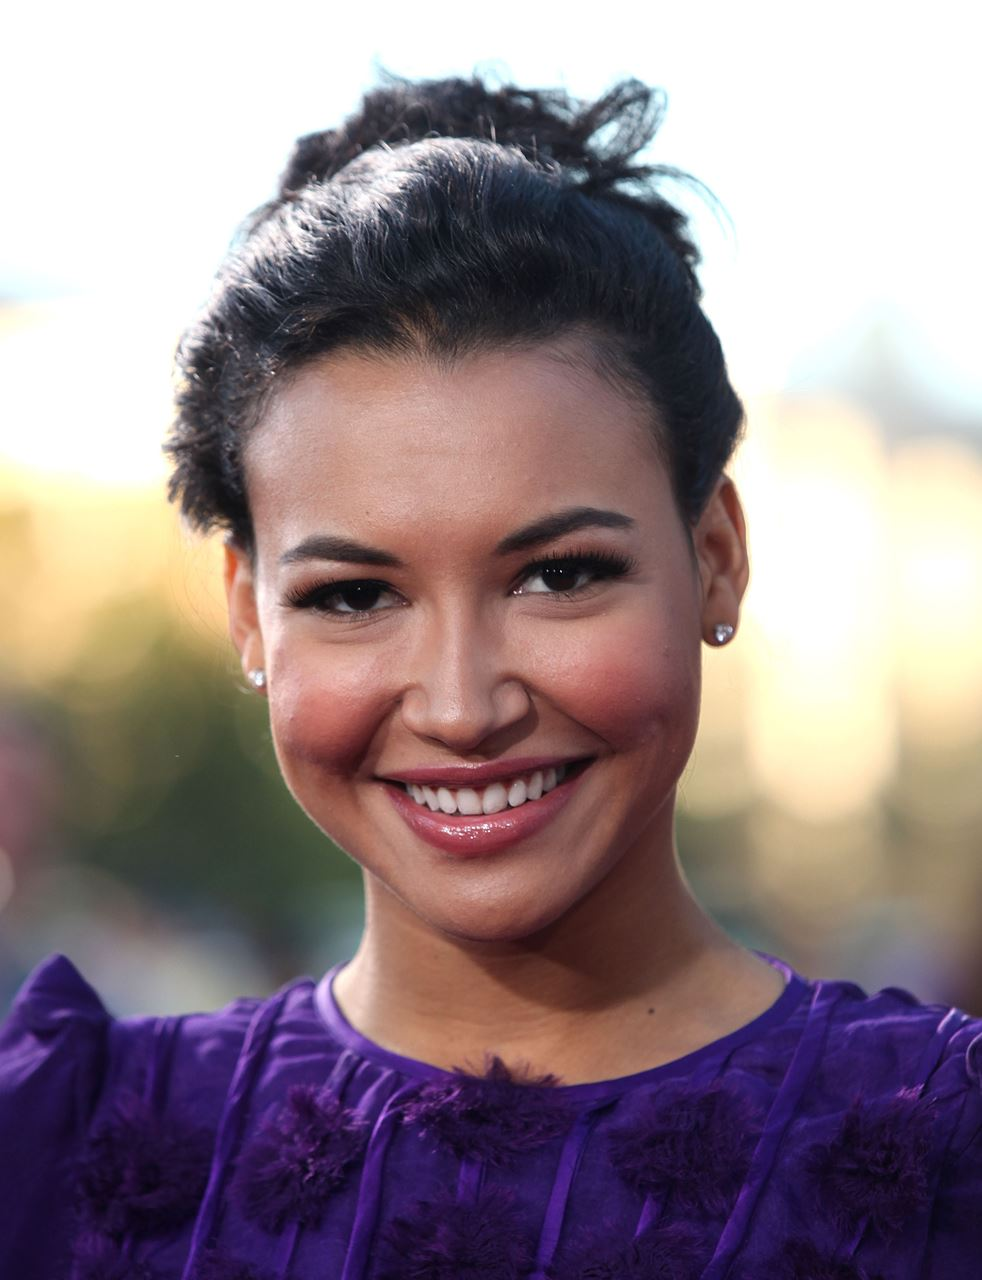 Picture of Naya Rivera: Performer, Mother, Daughter, Friend, and Inspiration